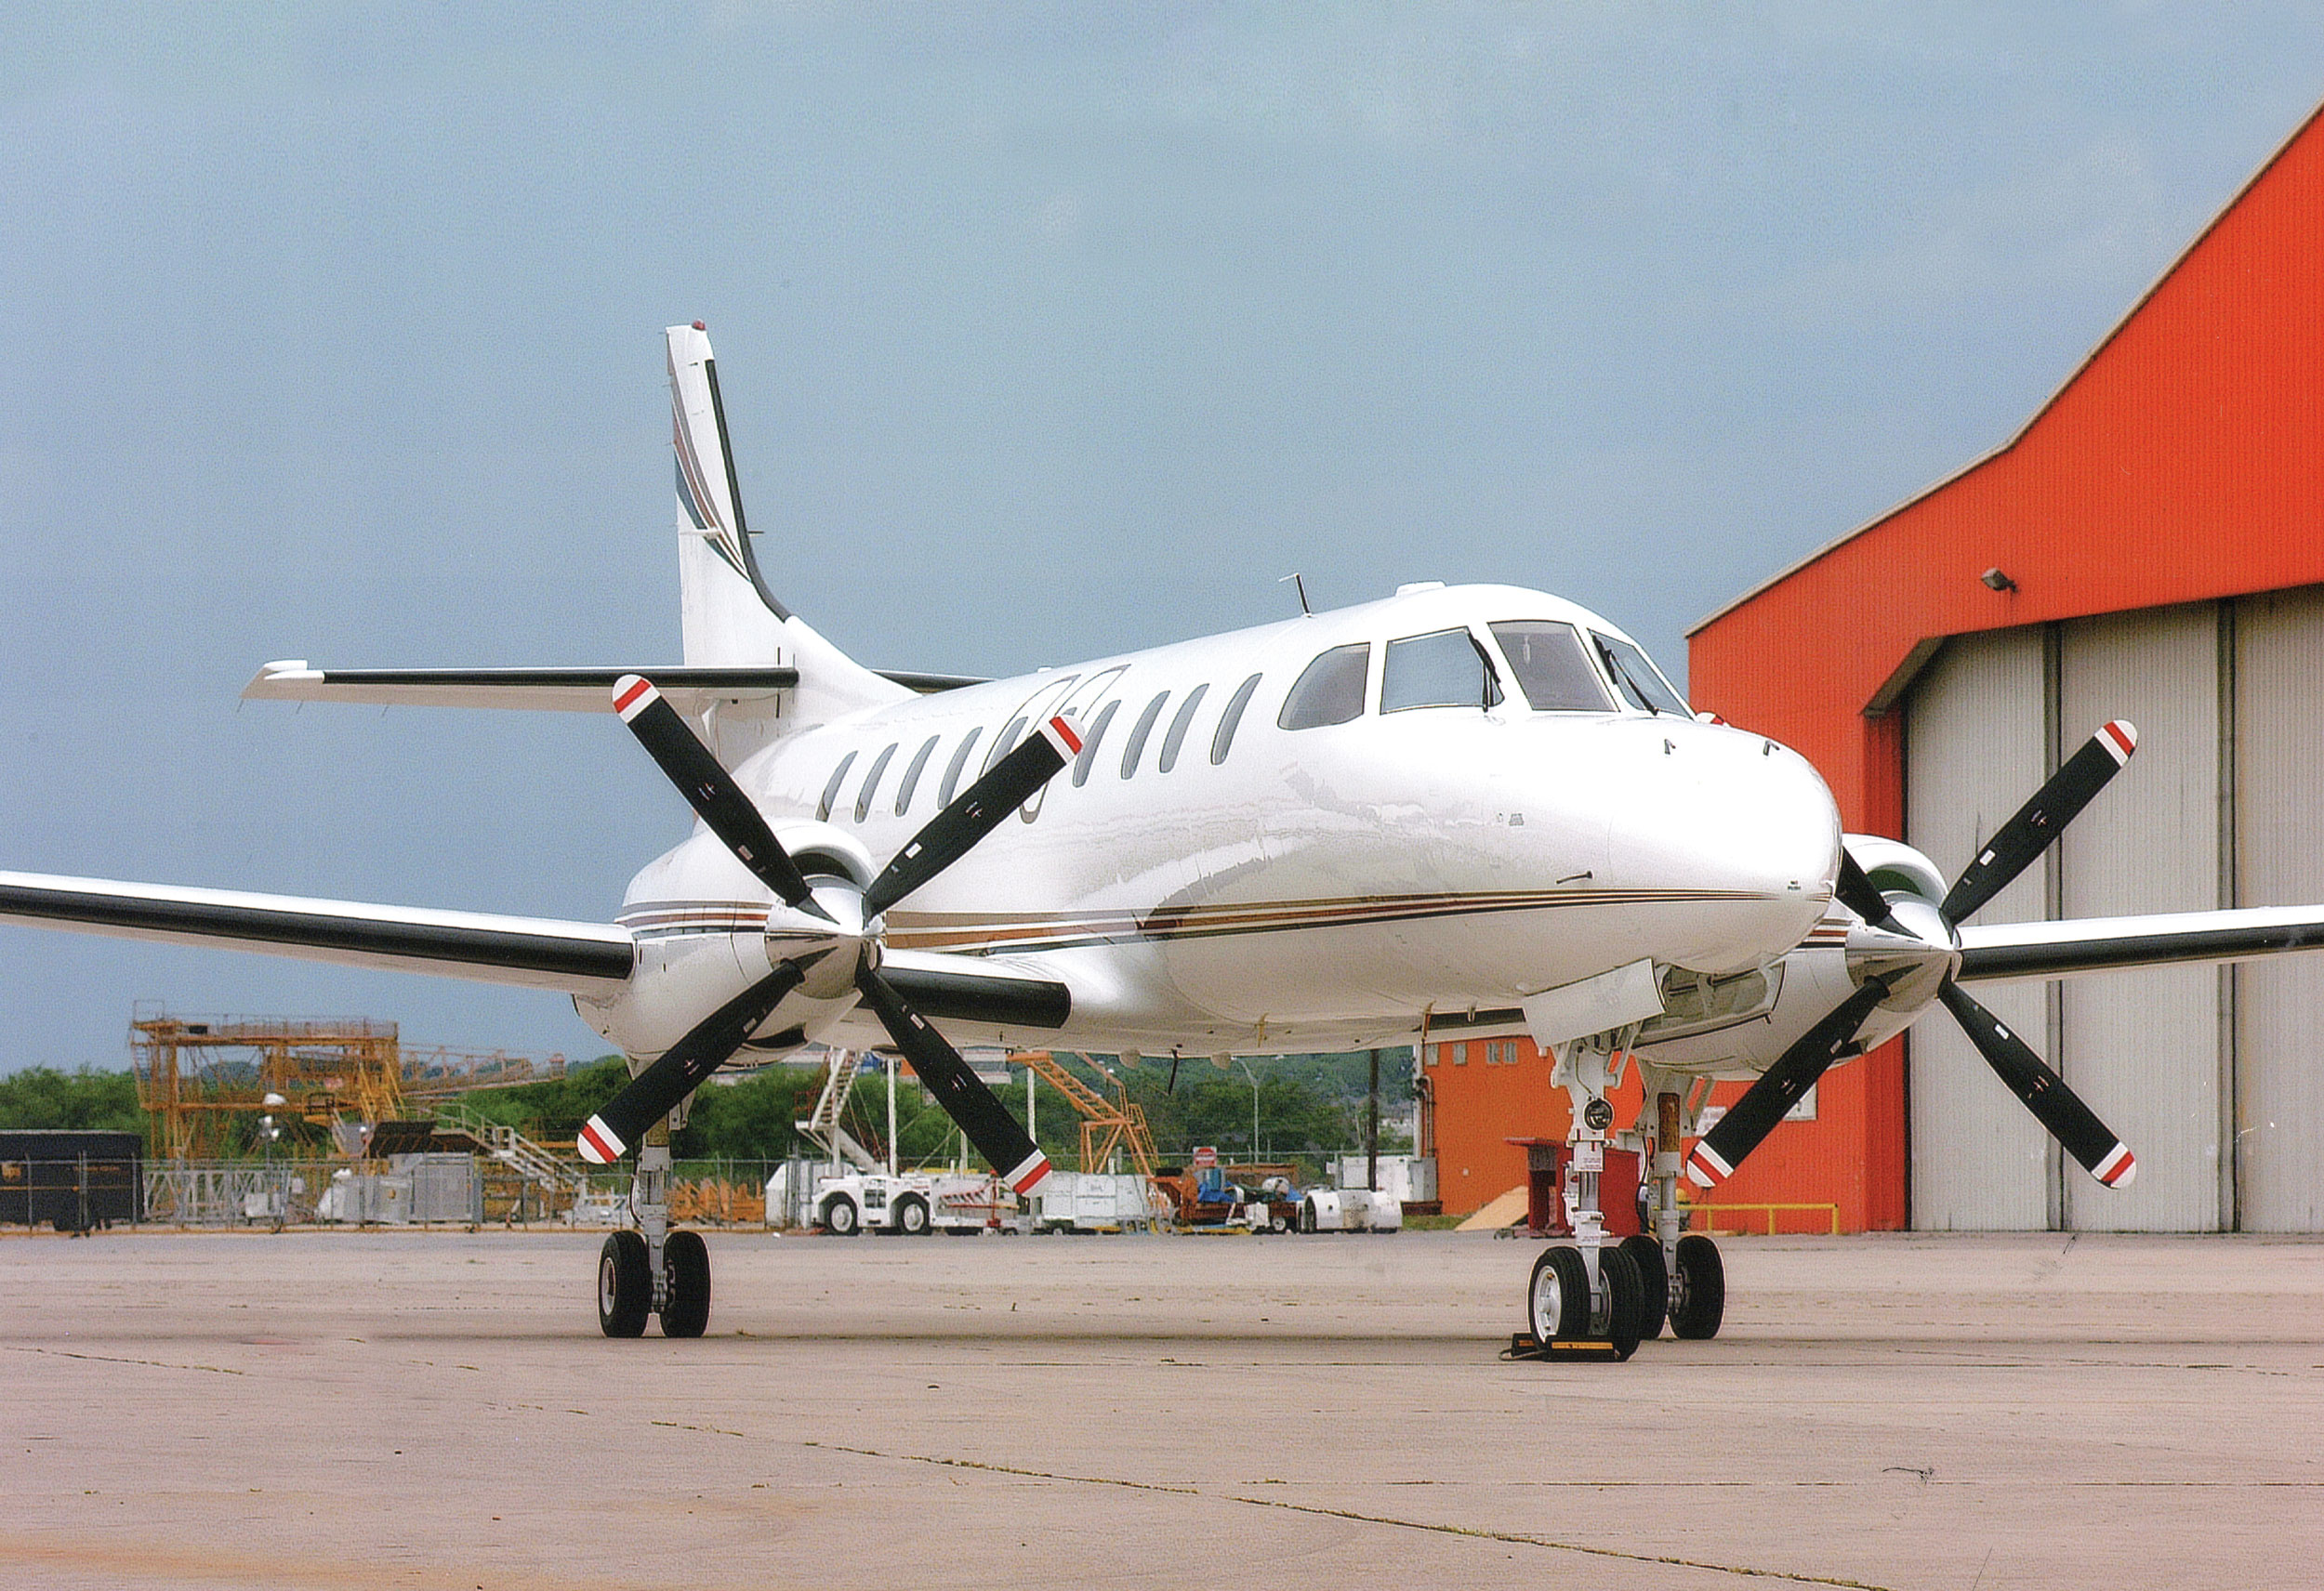 Used Turboprop Review Merlin Iv The Agony And The Ecstasy